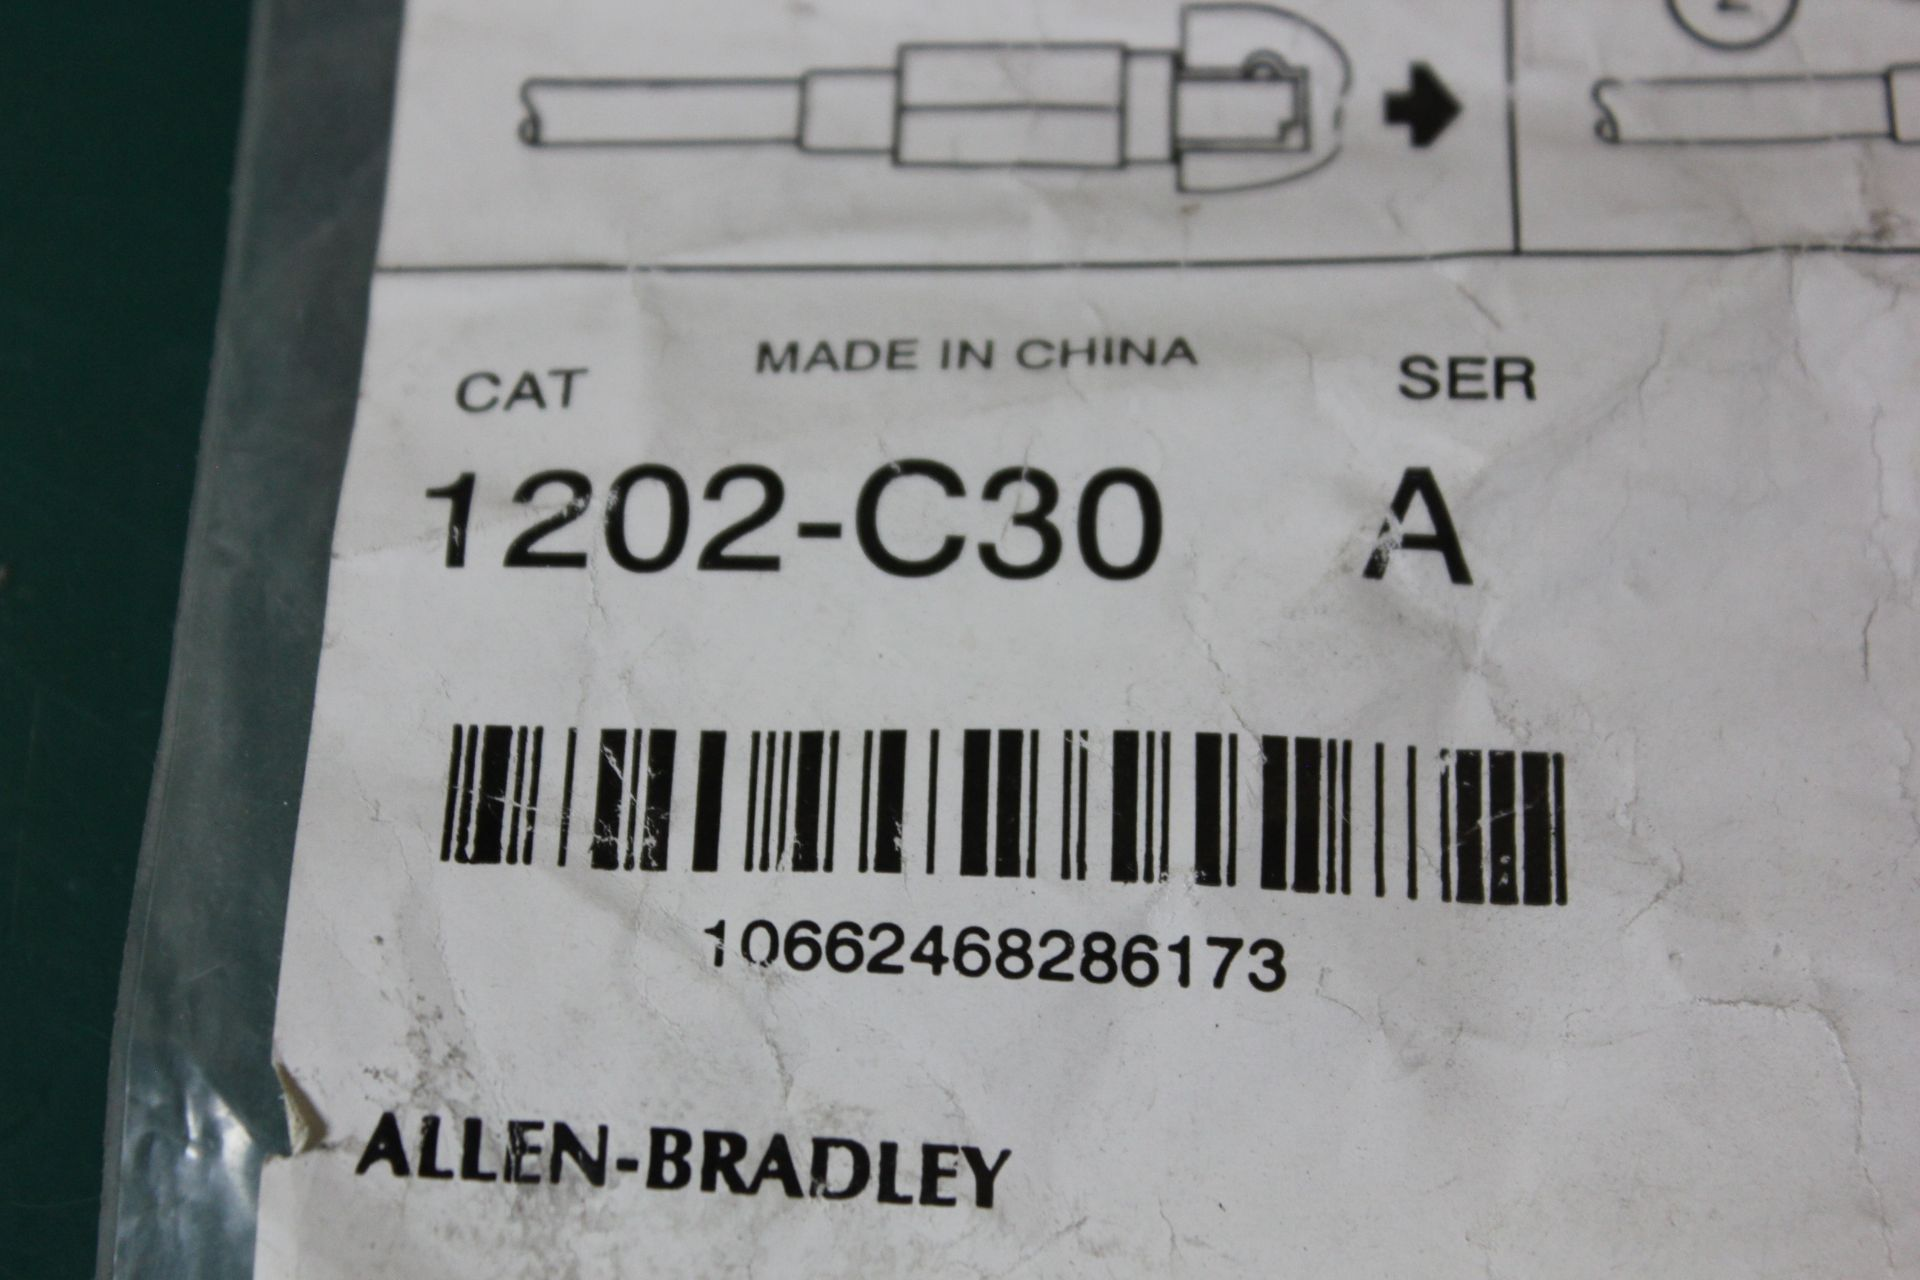 NEW ALLEN BRADLEY COMMUNICATIONS CABLE - Image 2 of 2